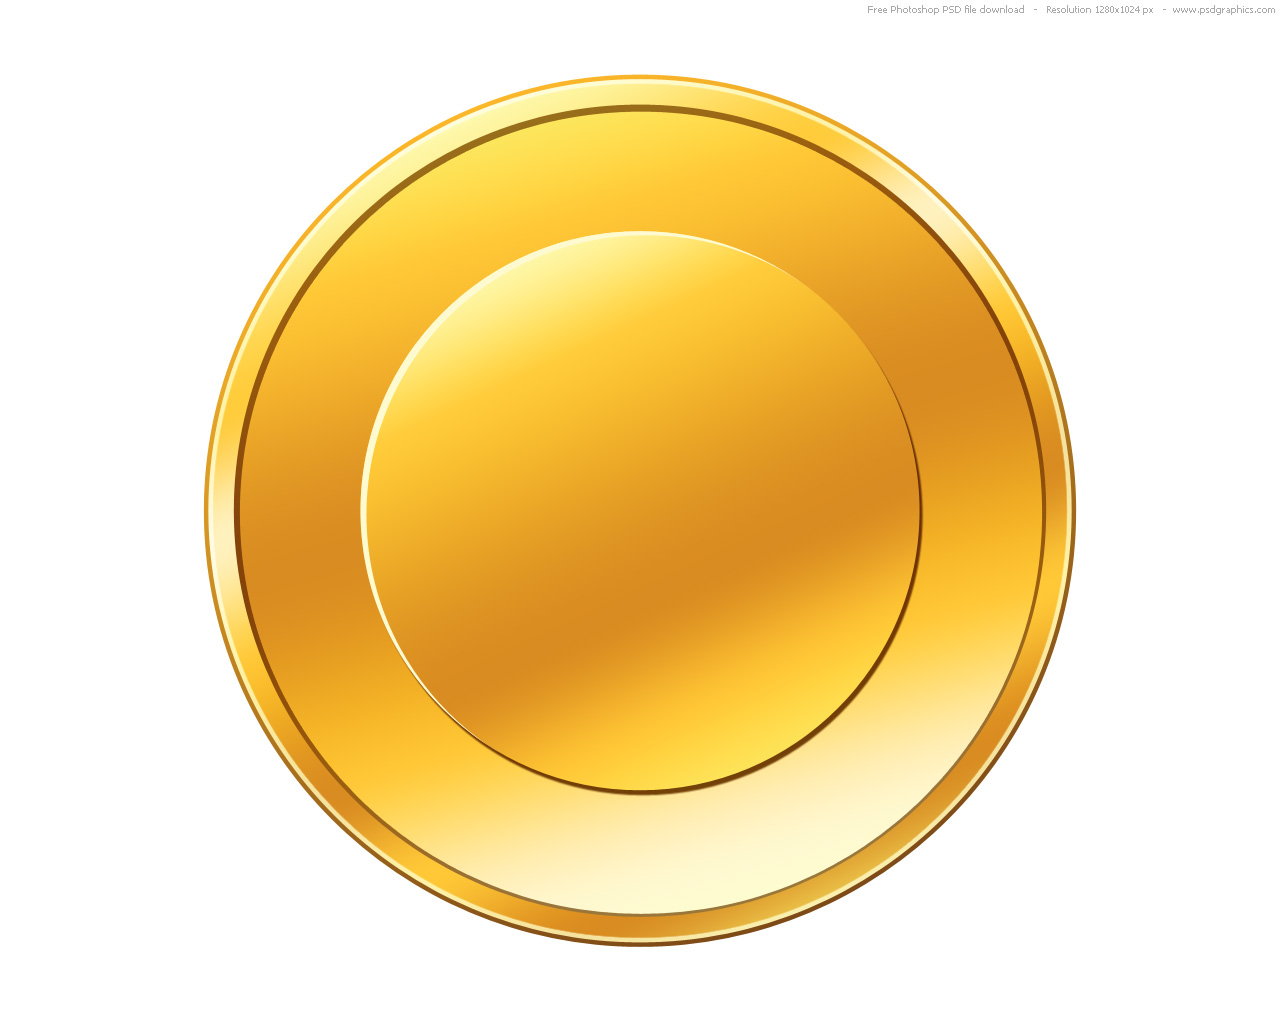 Coin clipart gold token Empty gold gold coin PSD